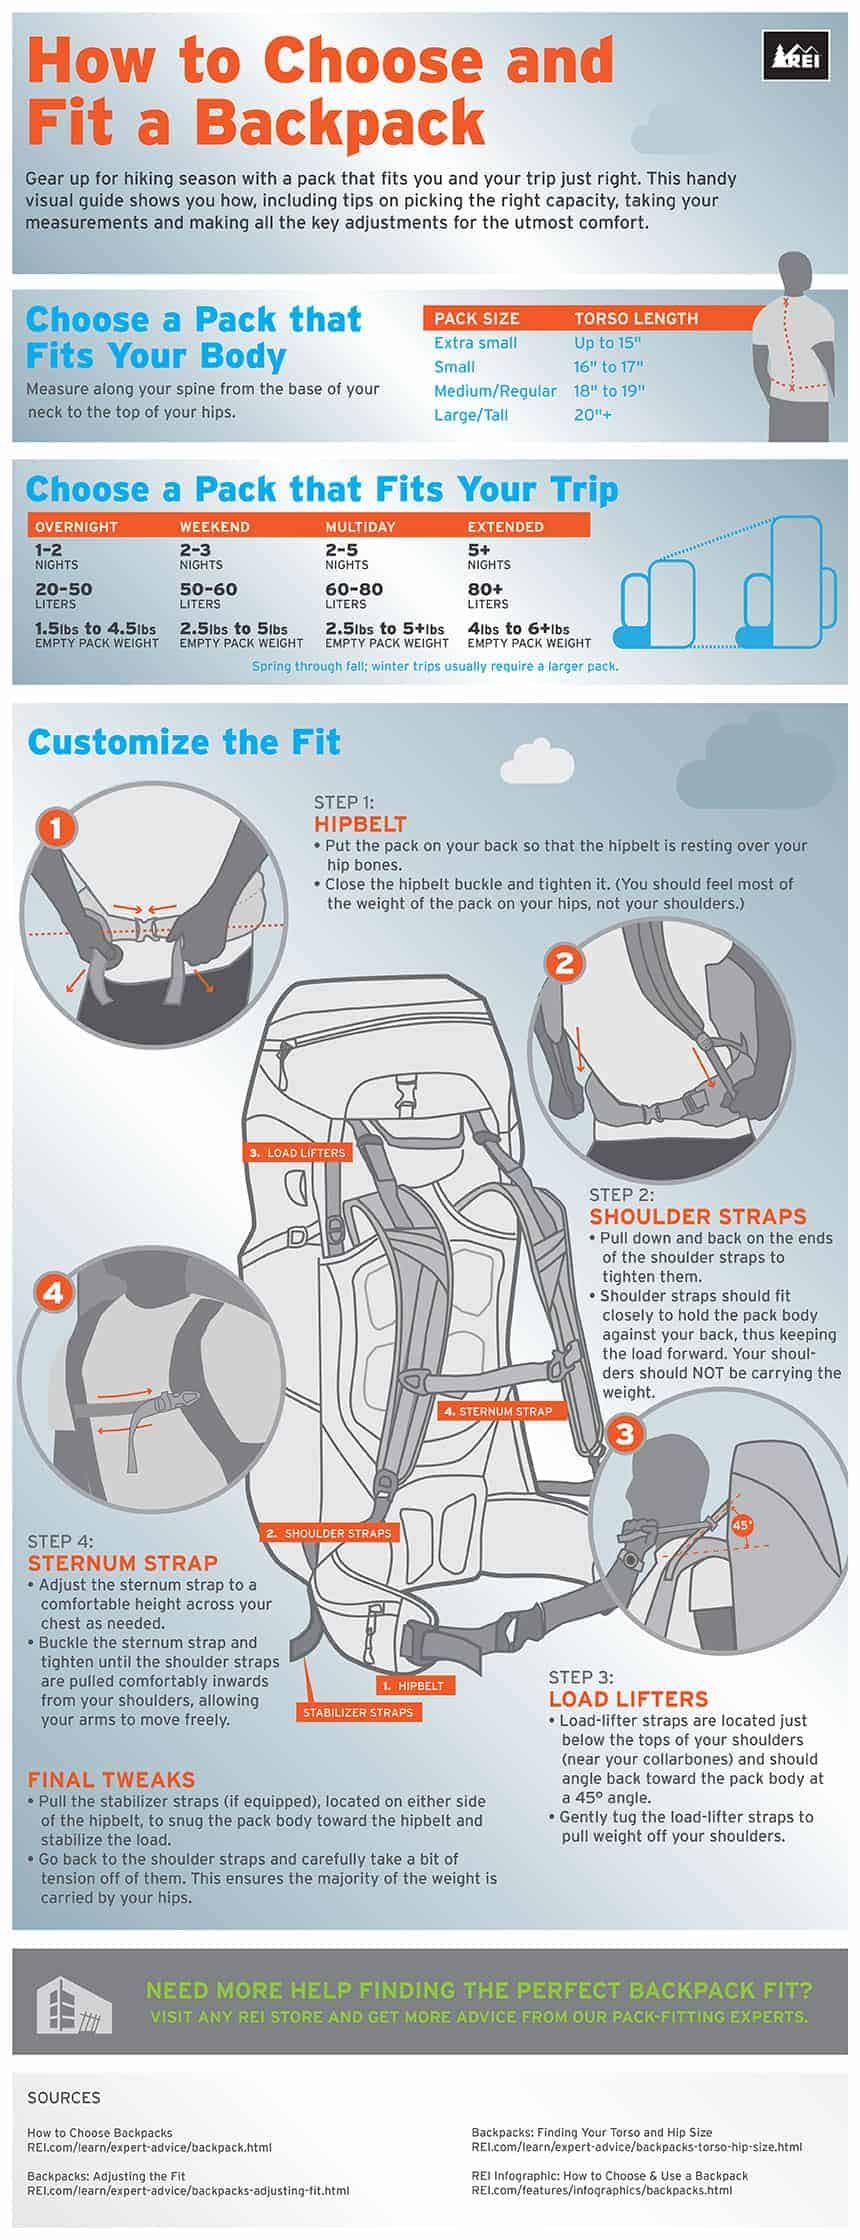 how to fit a backpack infographic